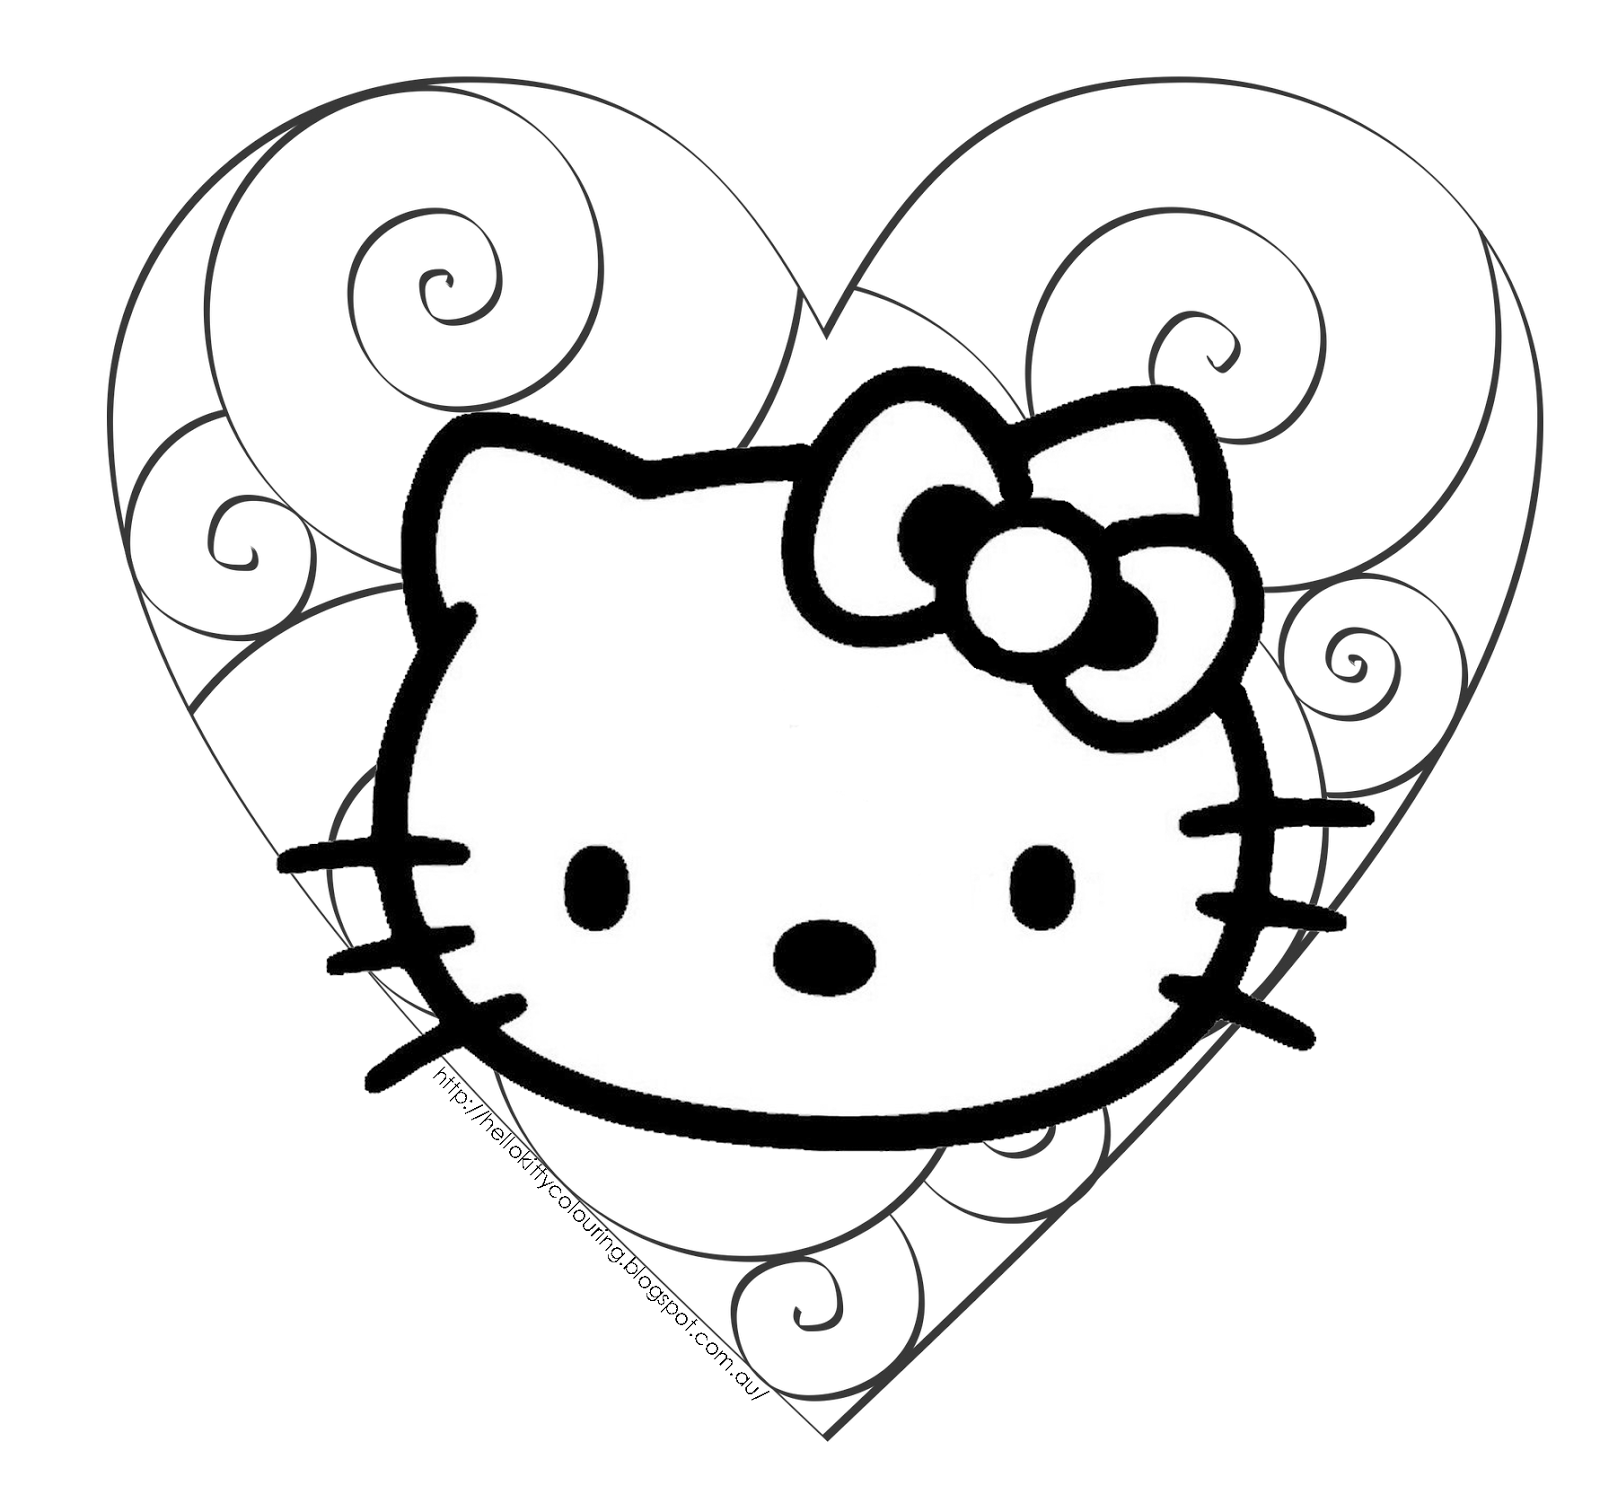 color hello kitty hello kitty coloring pages 2 hello kitty forever kitty color hello